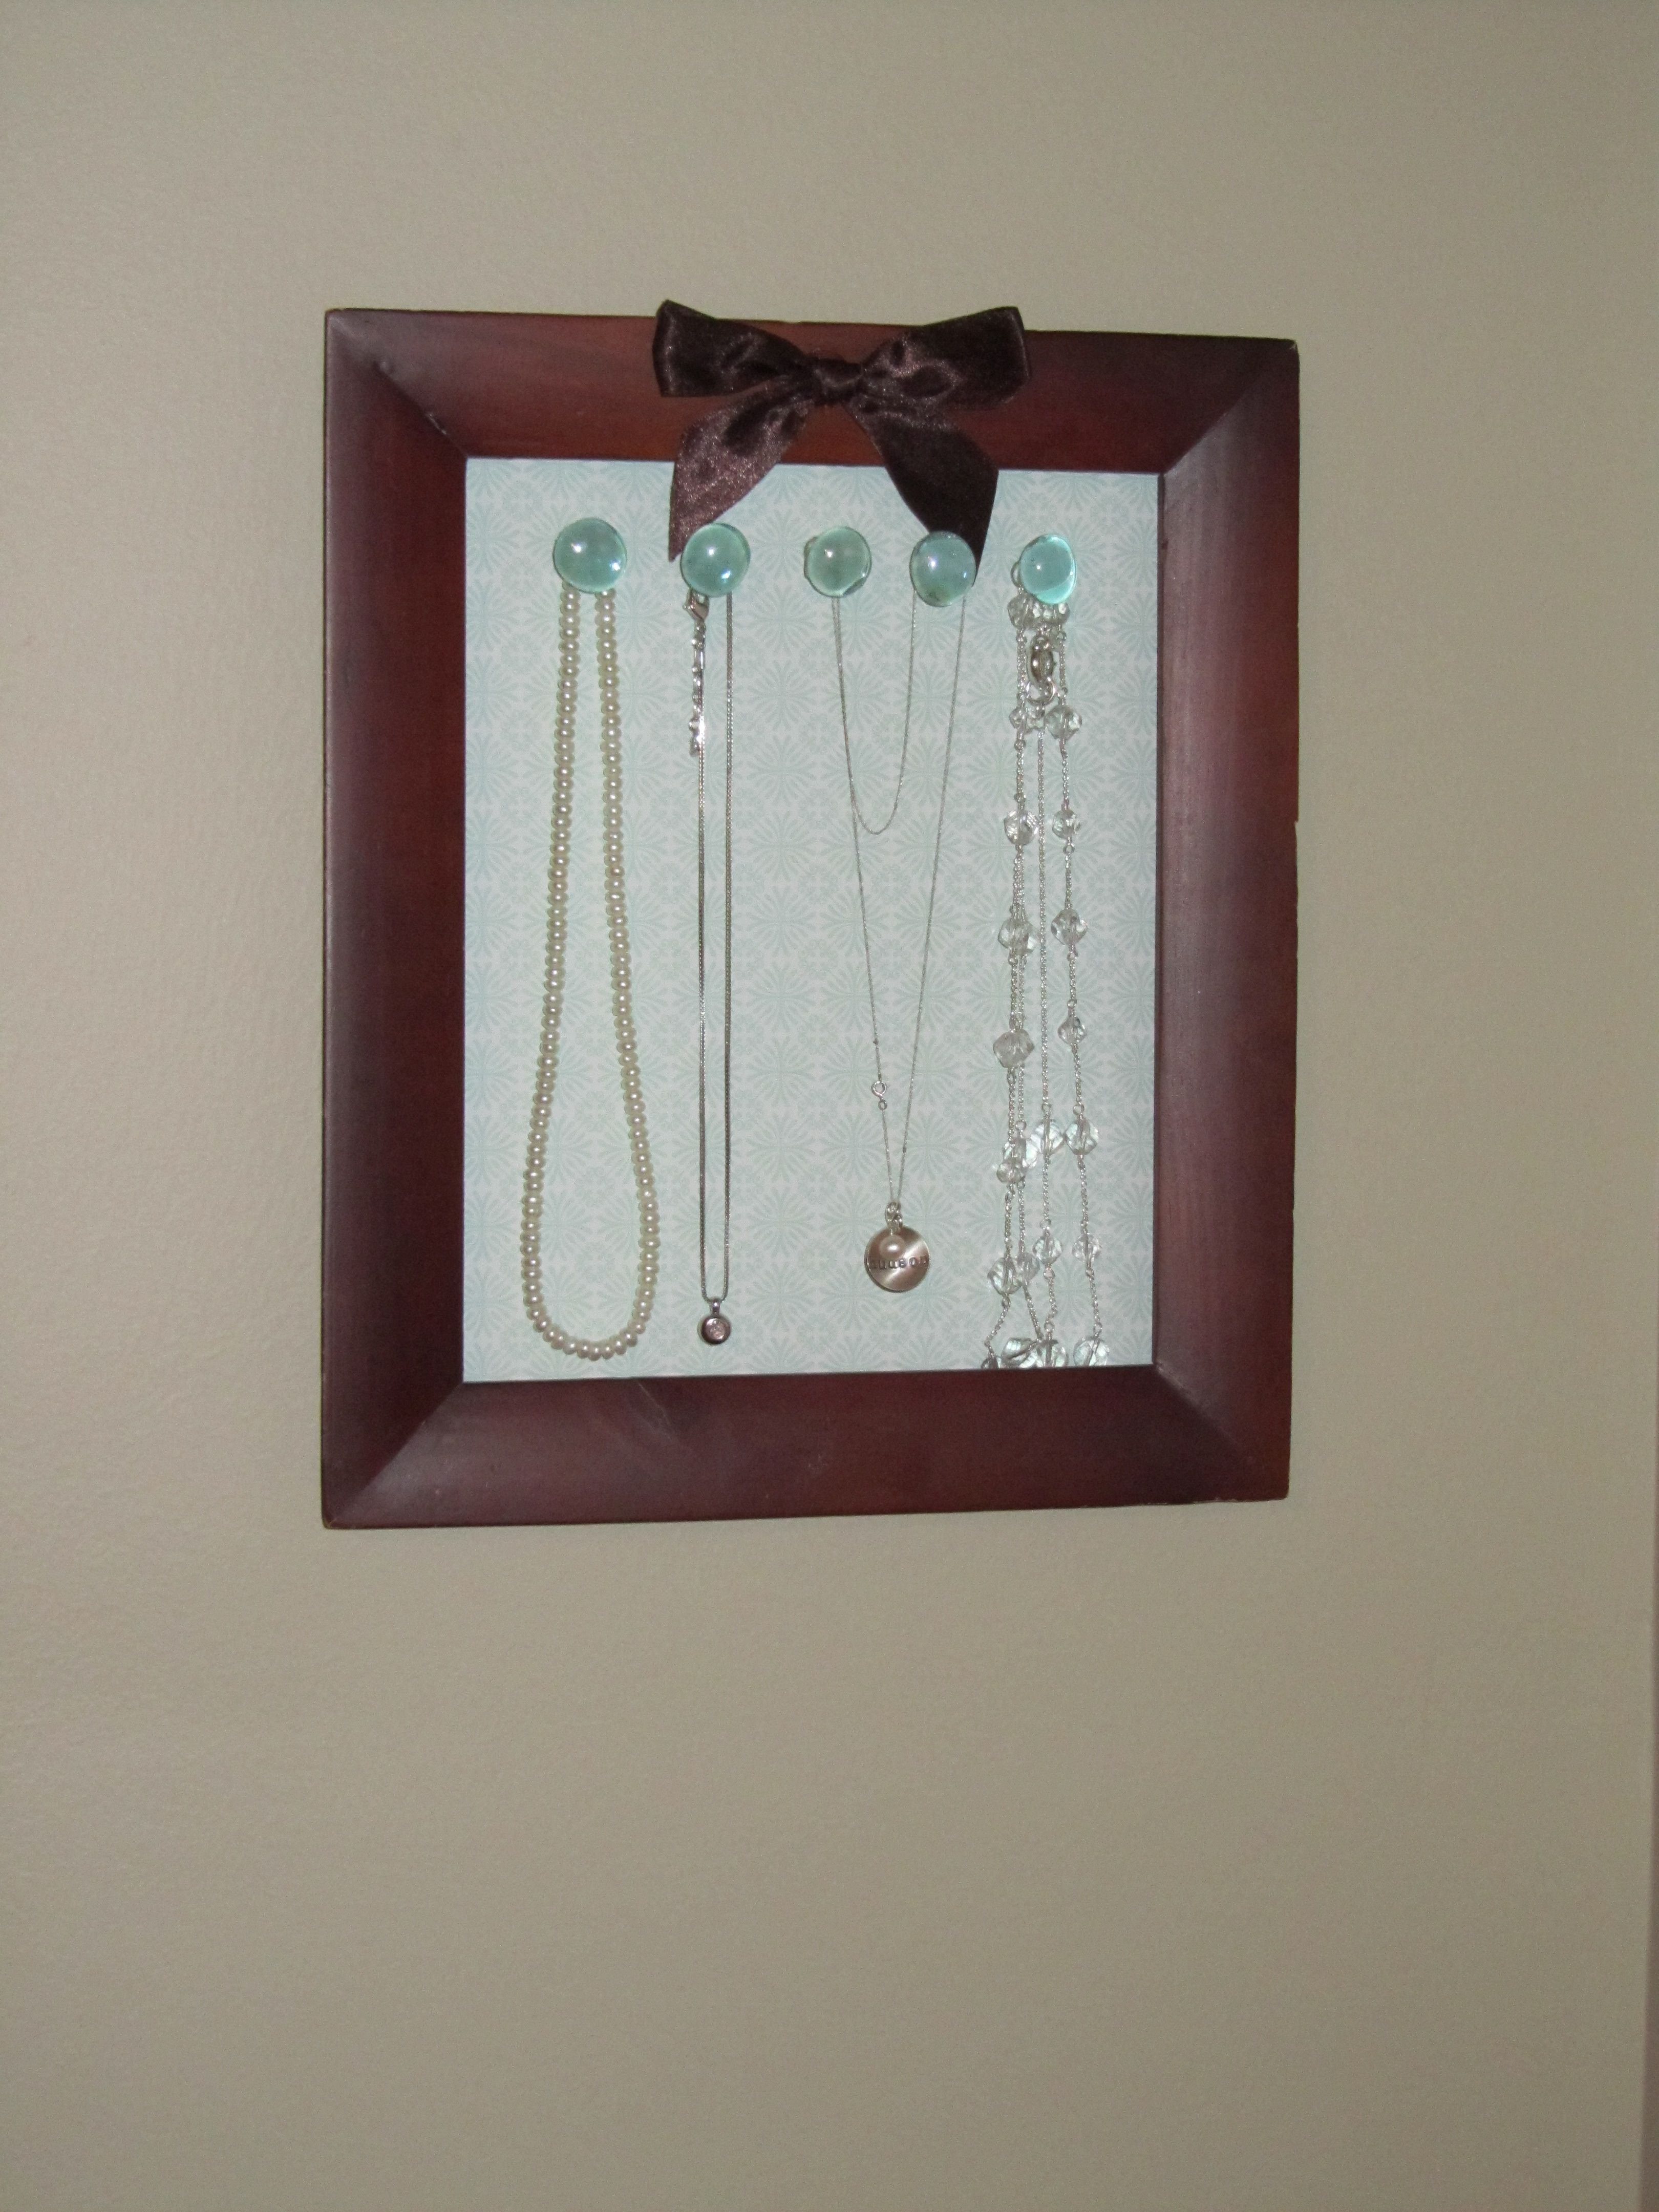 Necklace organizer.  This looks pretty easy - picture frame, craft paper, ribbon, glass beads and thumb tacks... and a handy dandy hot glue gun!    If this frame had a way to prop it up, this could be great for Premier shows.  :)